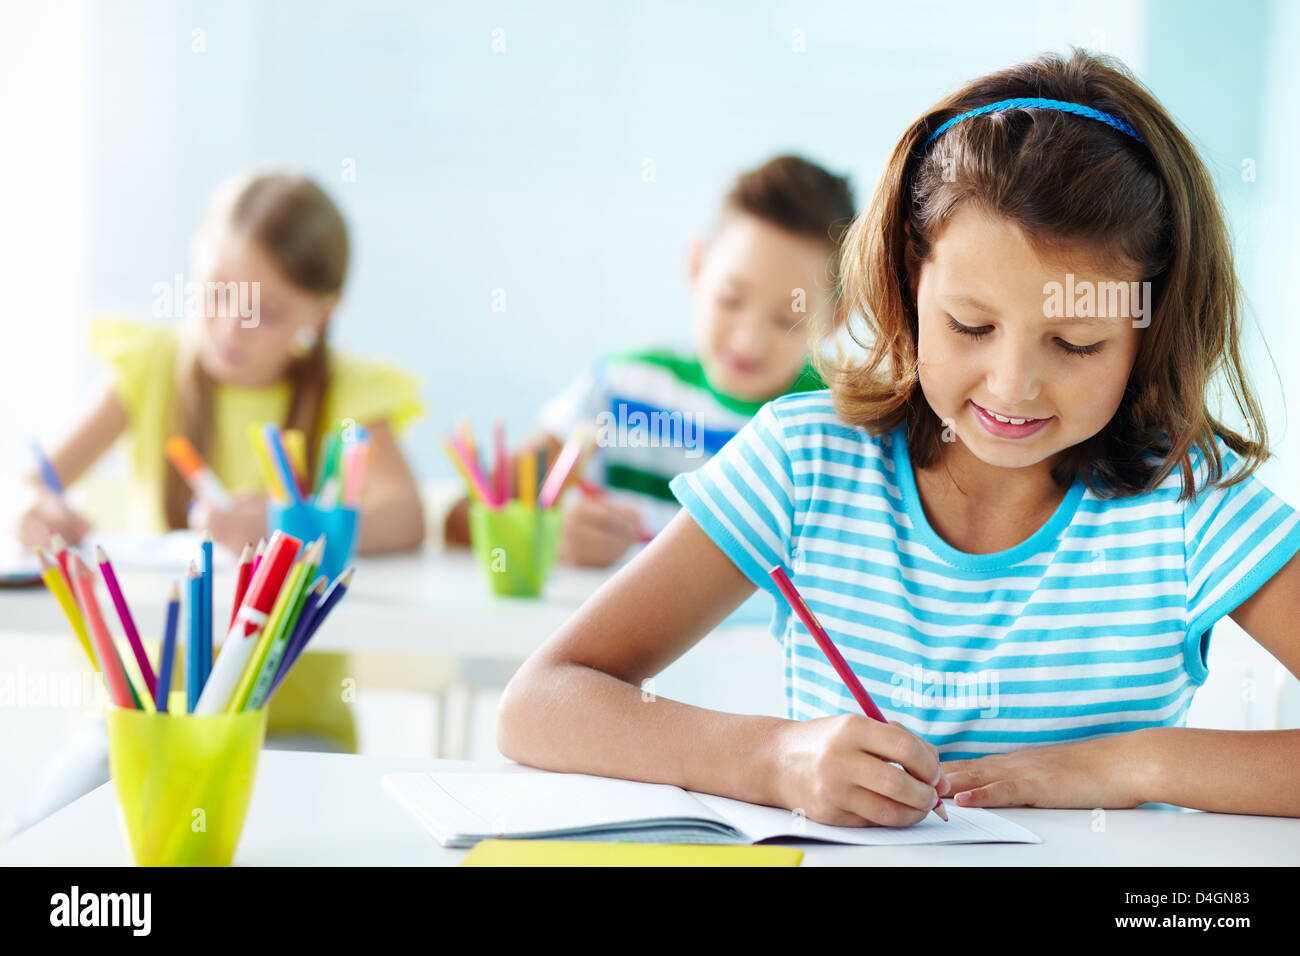 Portrait of lovely girl drawing at workplace with schoolmates on background - Stock Image